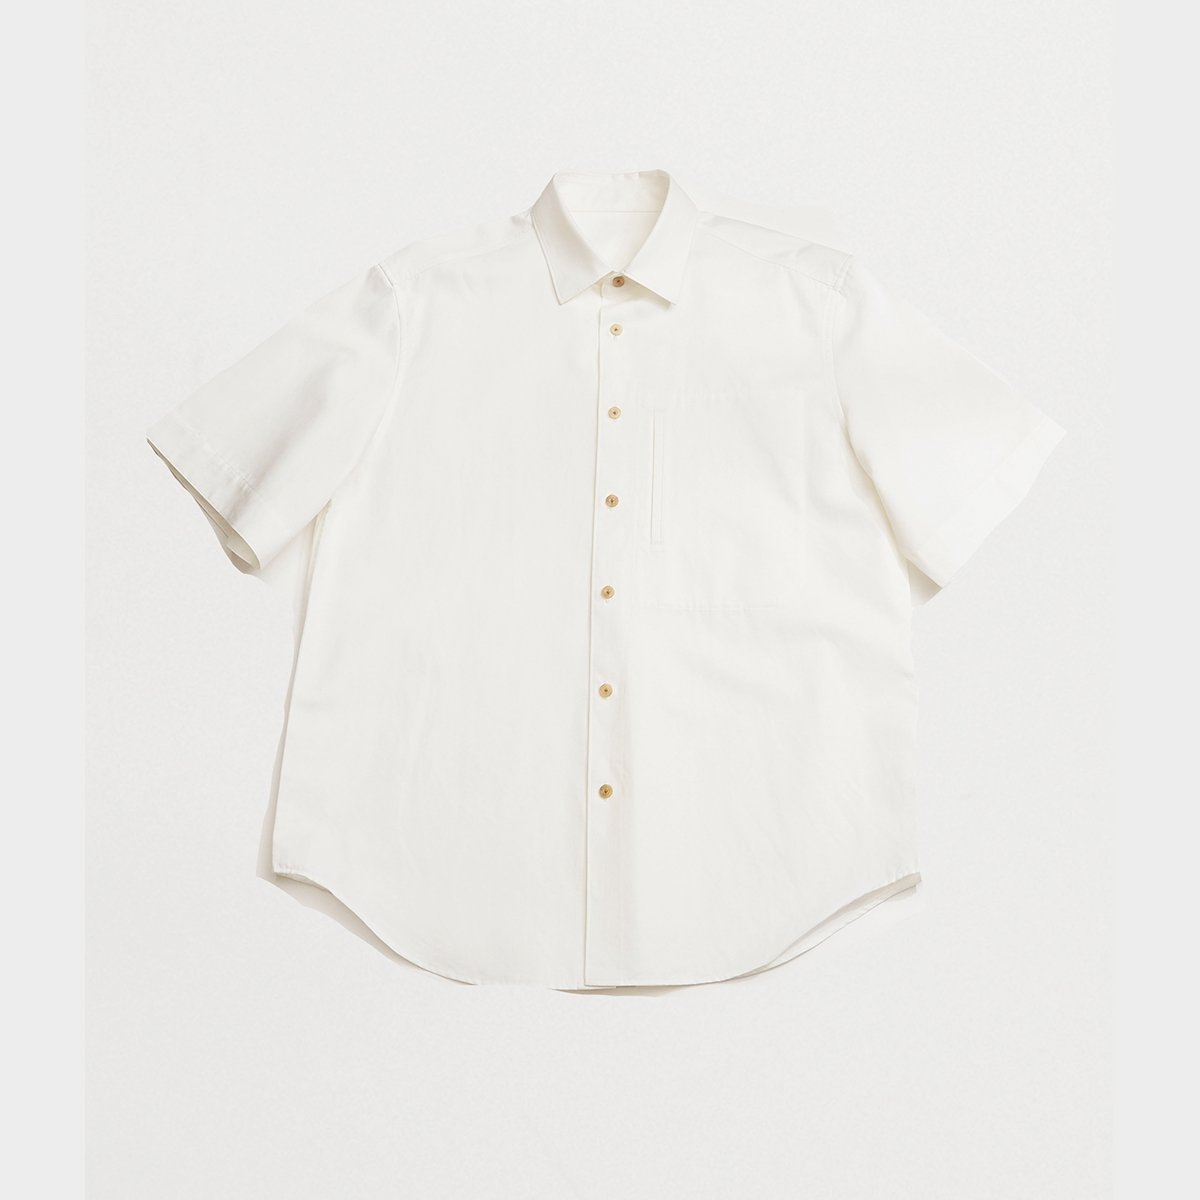 <img class='new_mark_img1' src='https://img.shop-pro.jp/img/new/icons5.gif' style='border:none;display:inline;margin:0px;padding:0px;width:auto;' />CLASSIC SHORT-SLEEVED SHIRT / WHITE